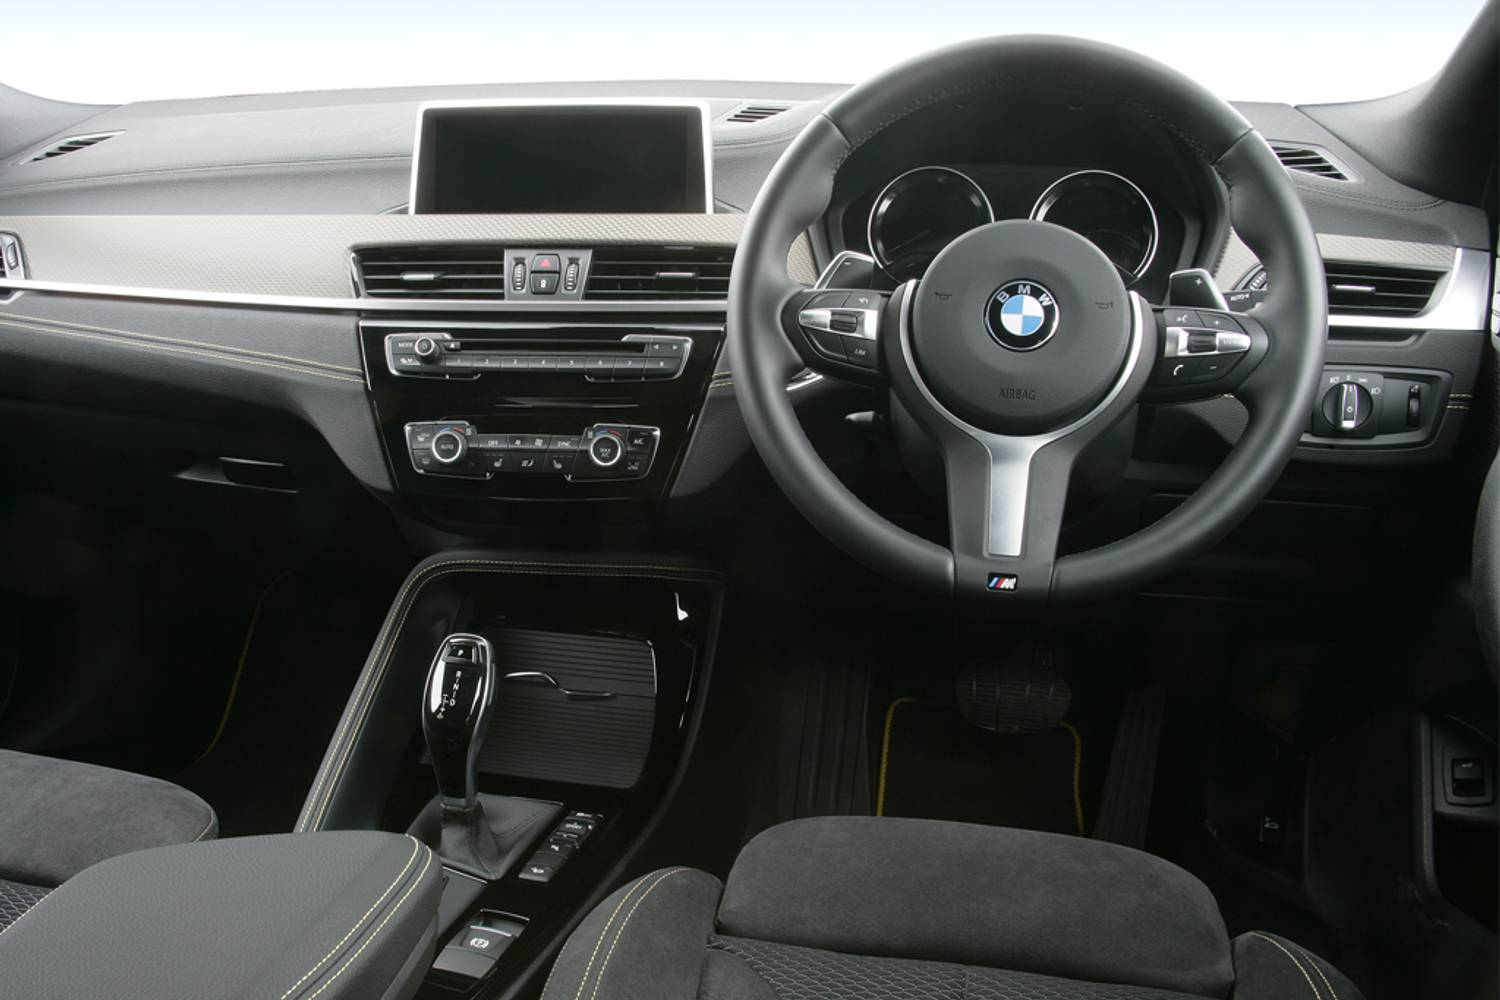 BMW X2 Hatchback 5dr interior